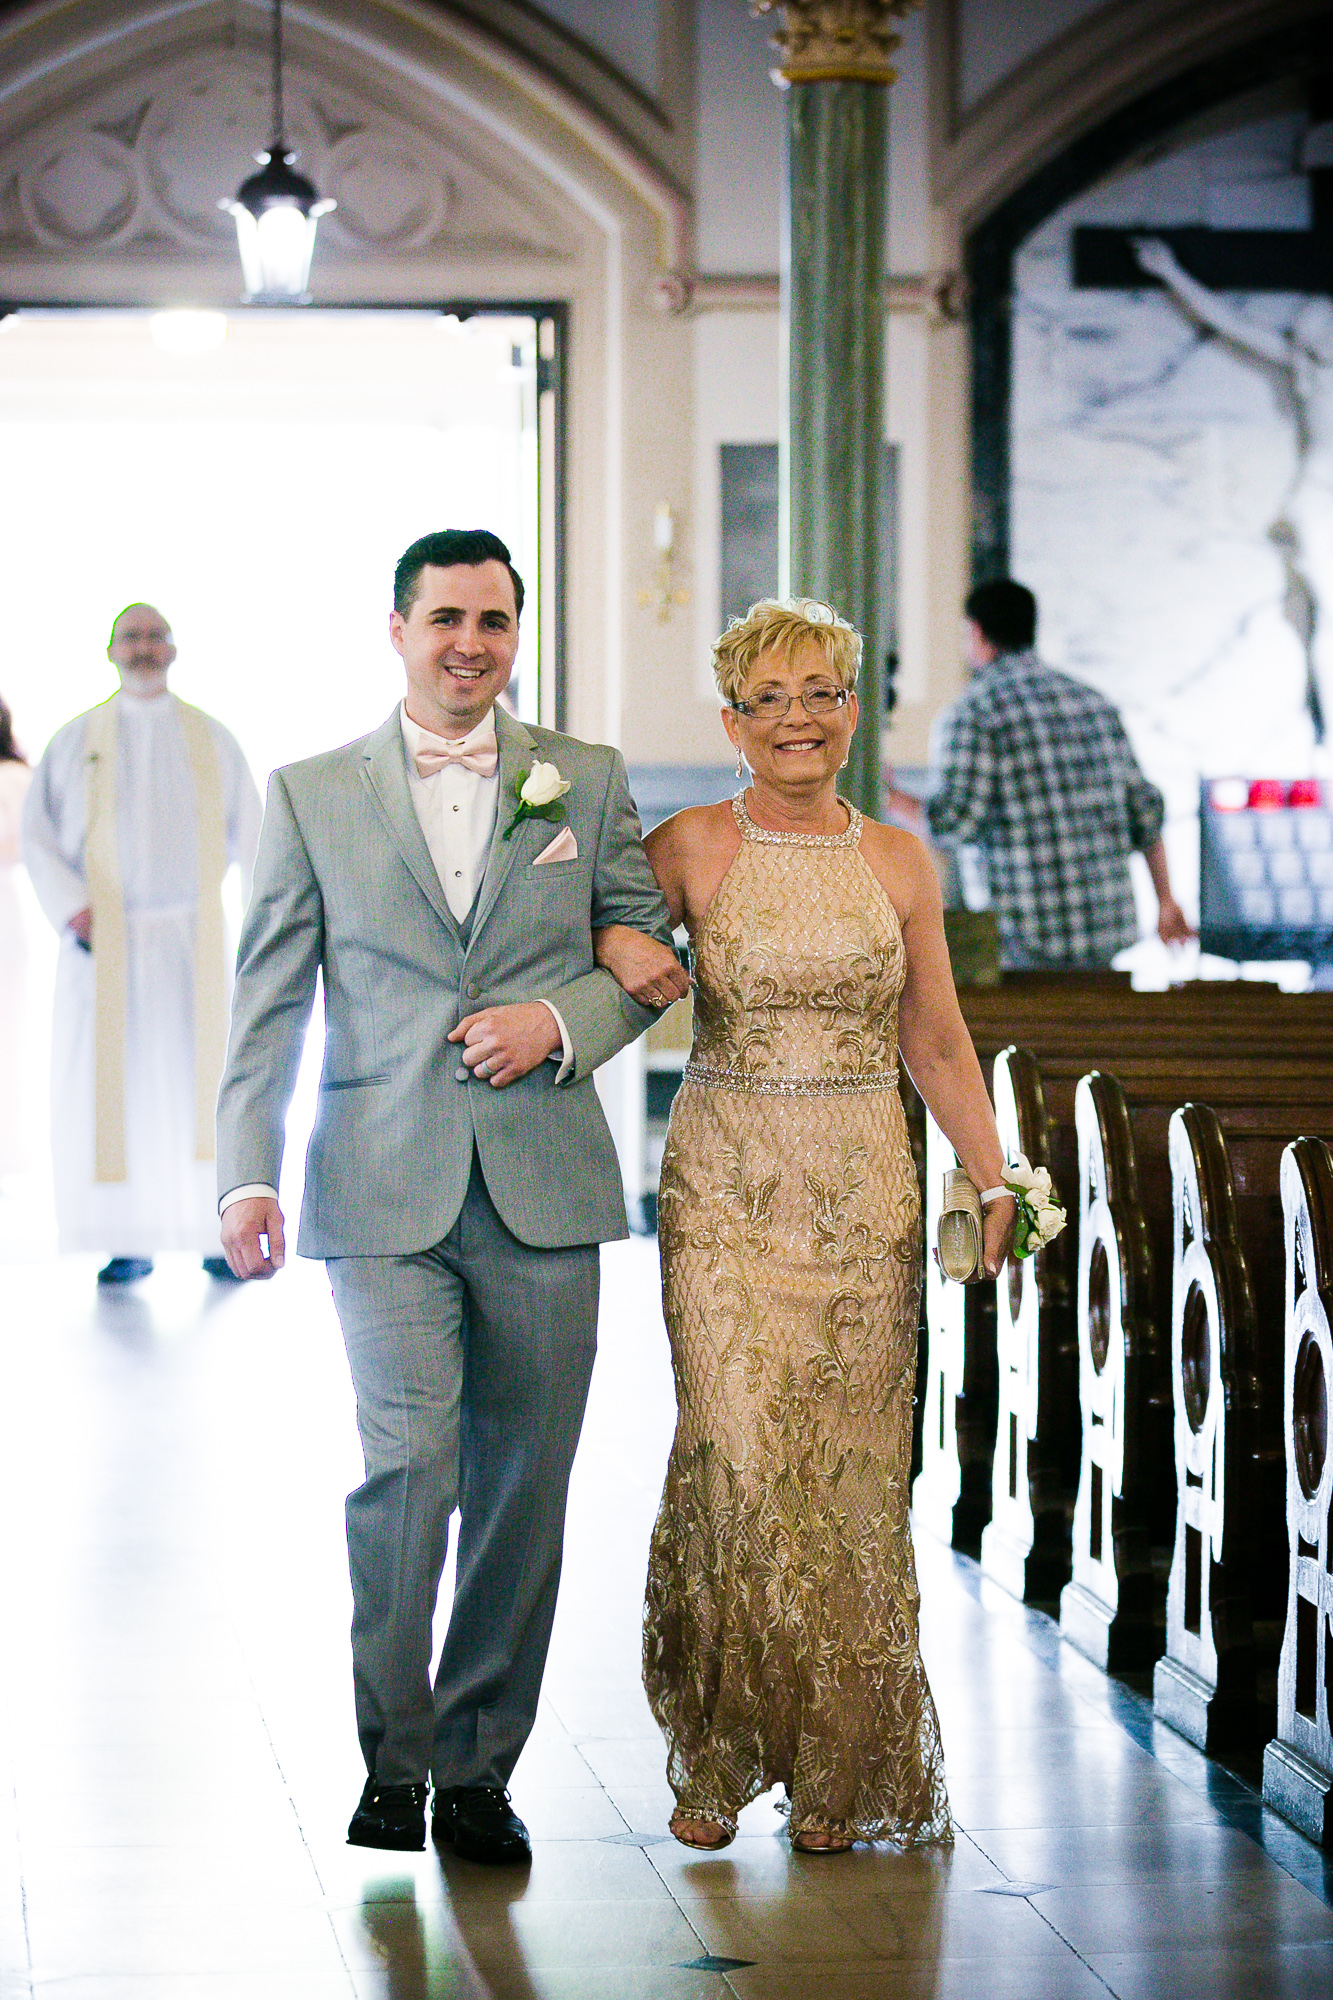 LUCIENS MANOR WEDDING - BERLIN NJ -031.jpg